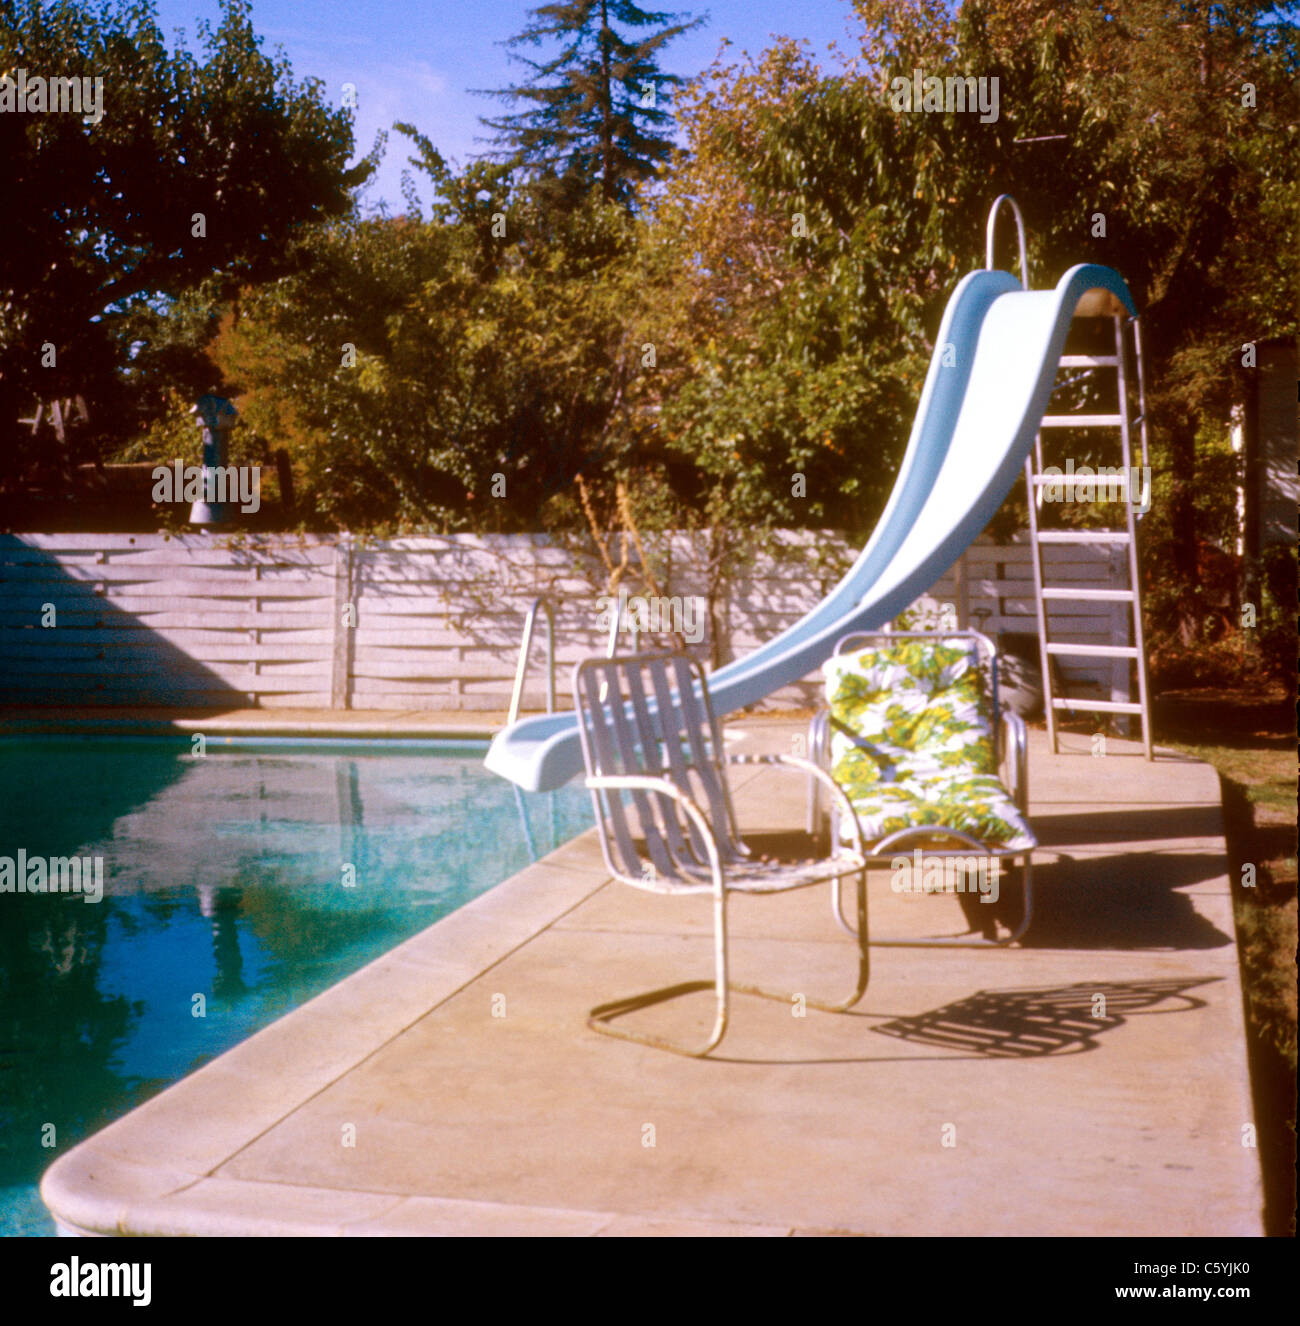 backyard dug in swimming pool with slide and 70s chair 1977 1970s architecture decor furniture lawn - Stock Image